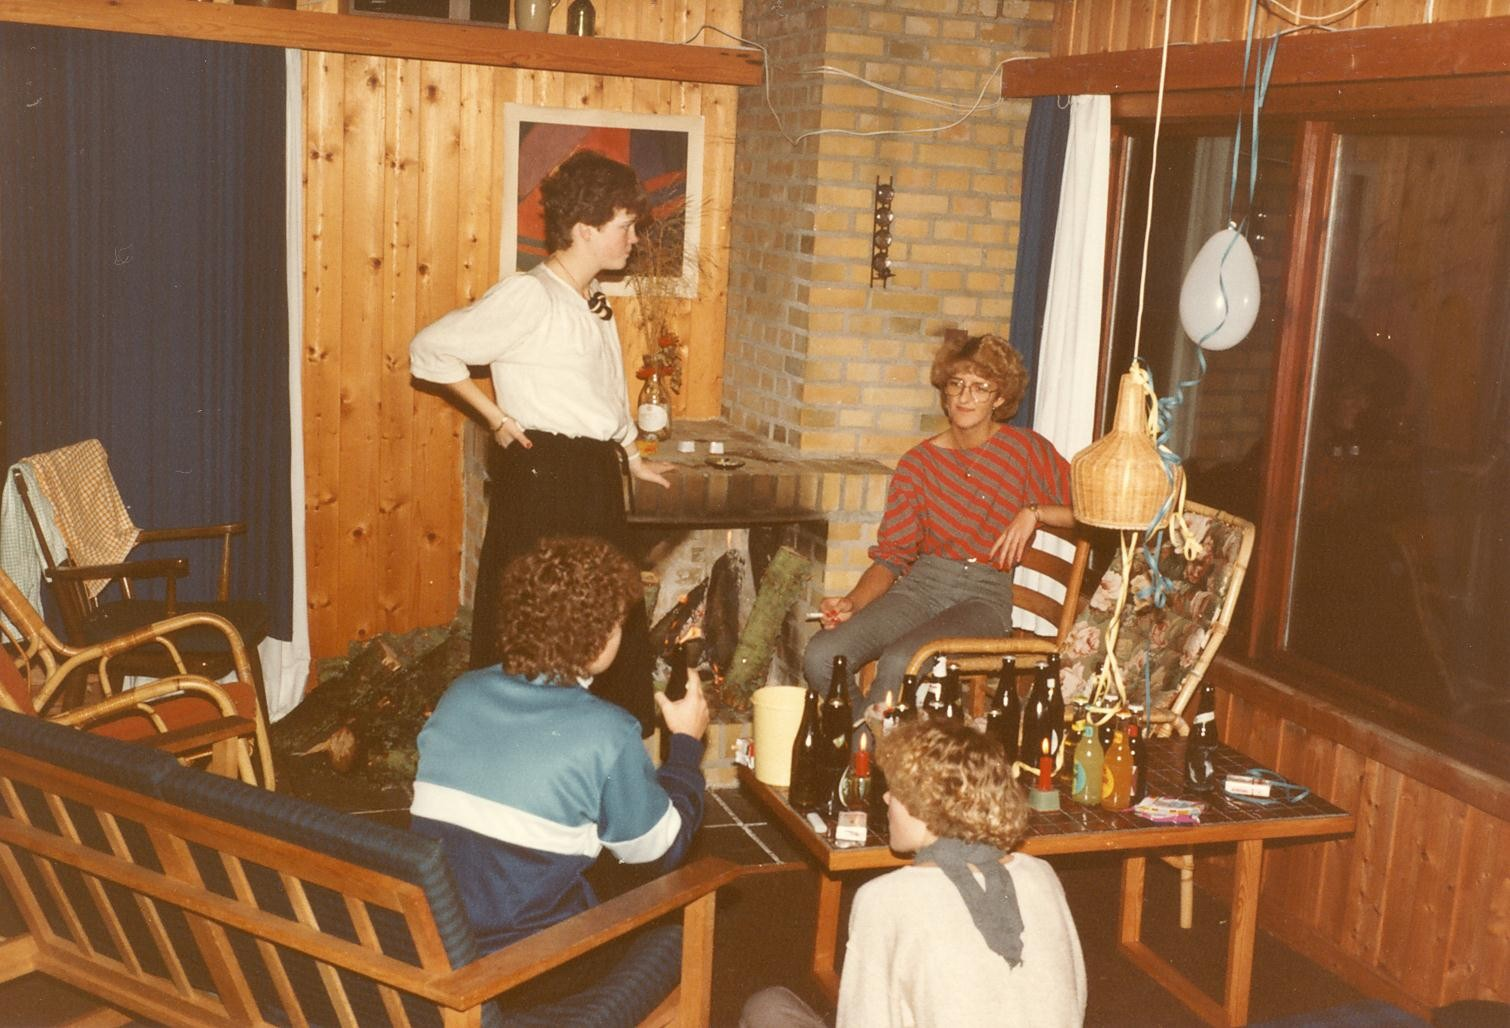 Scan11359 31-12-1983